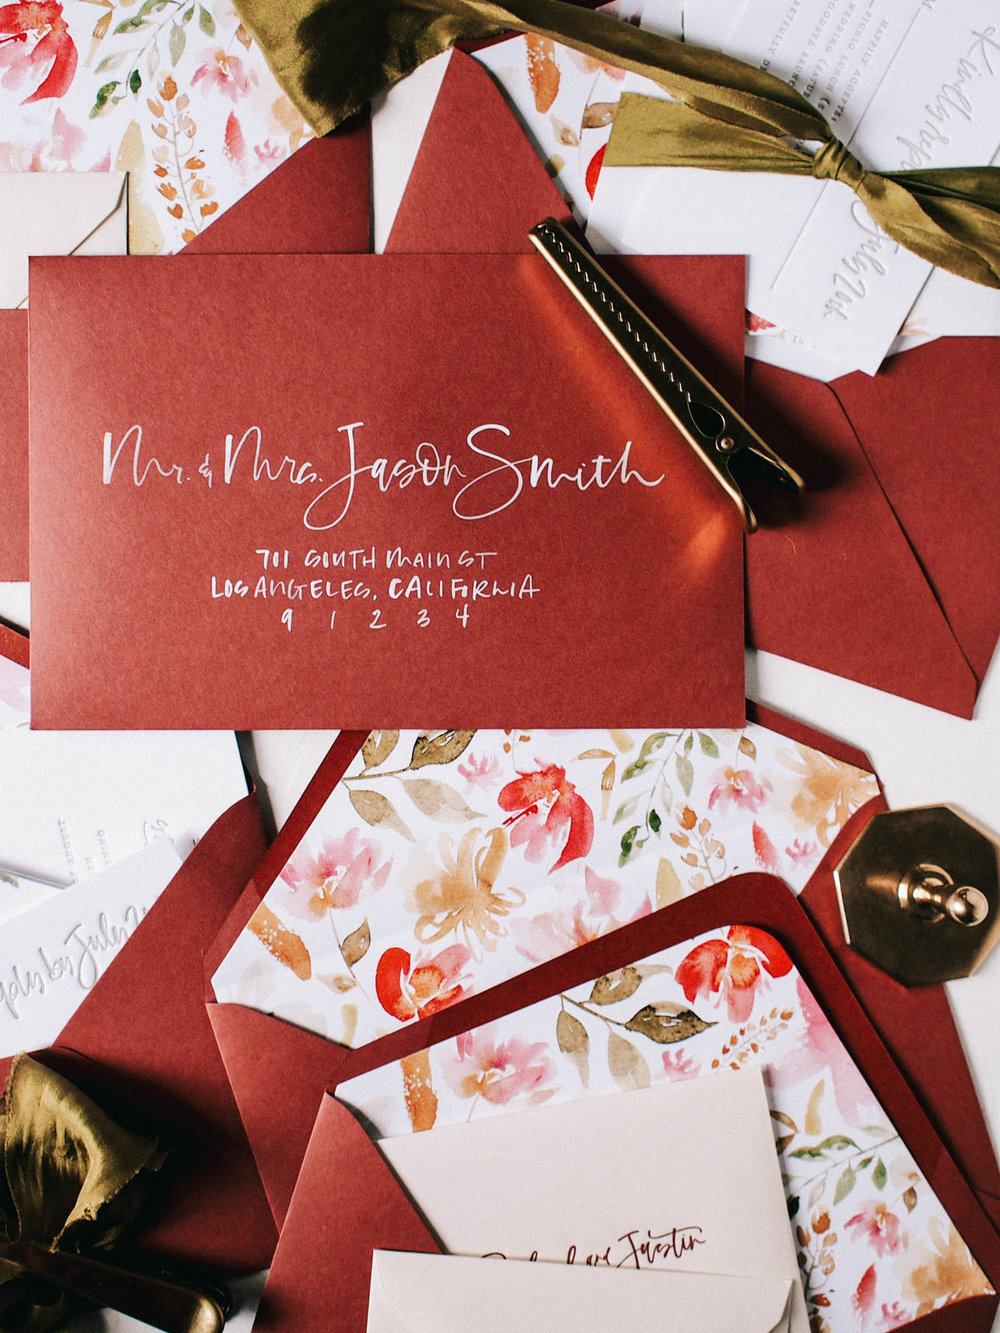 How to letter dark envelopes with white brush lettering | A Fabulous Fete